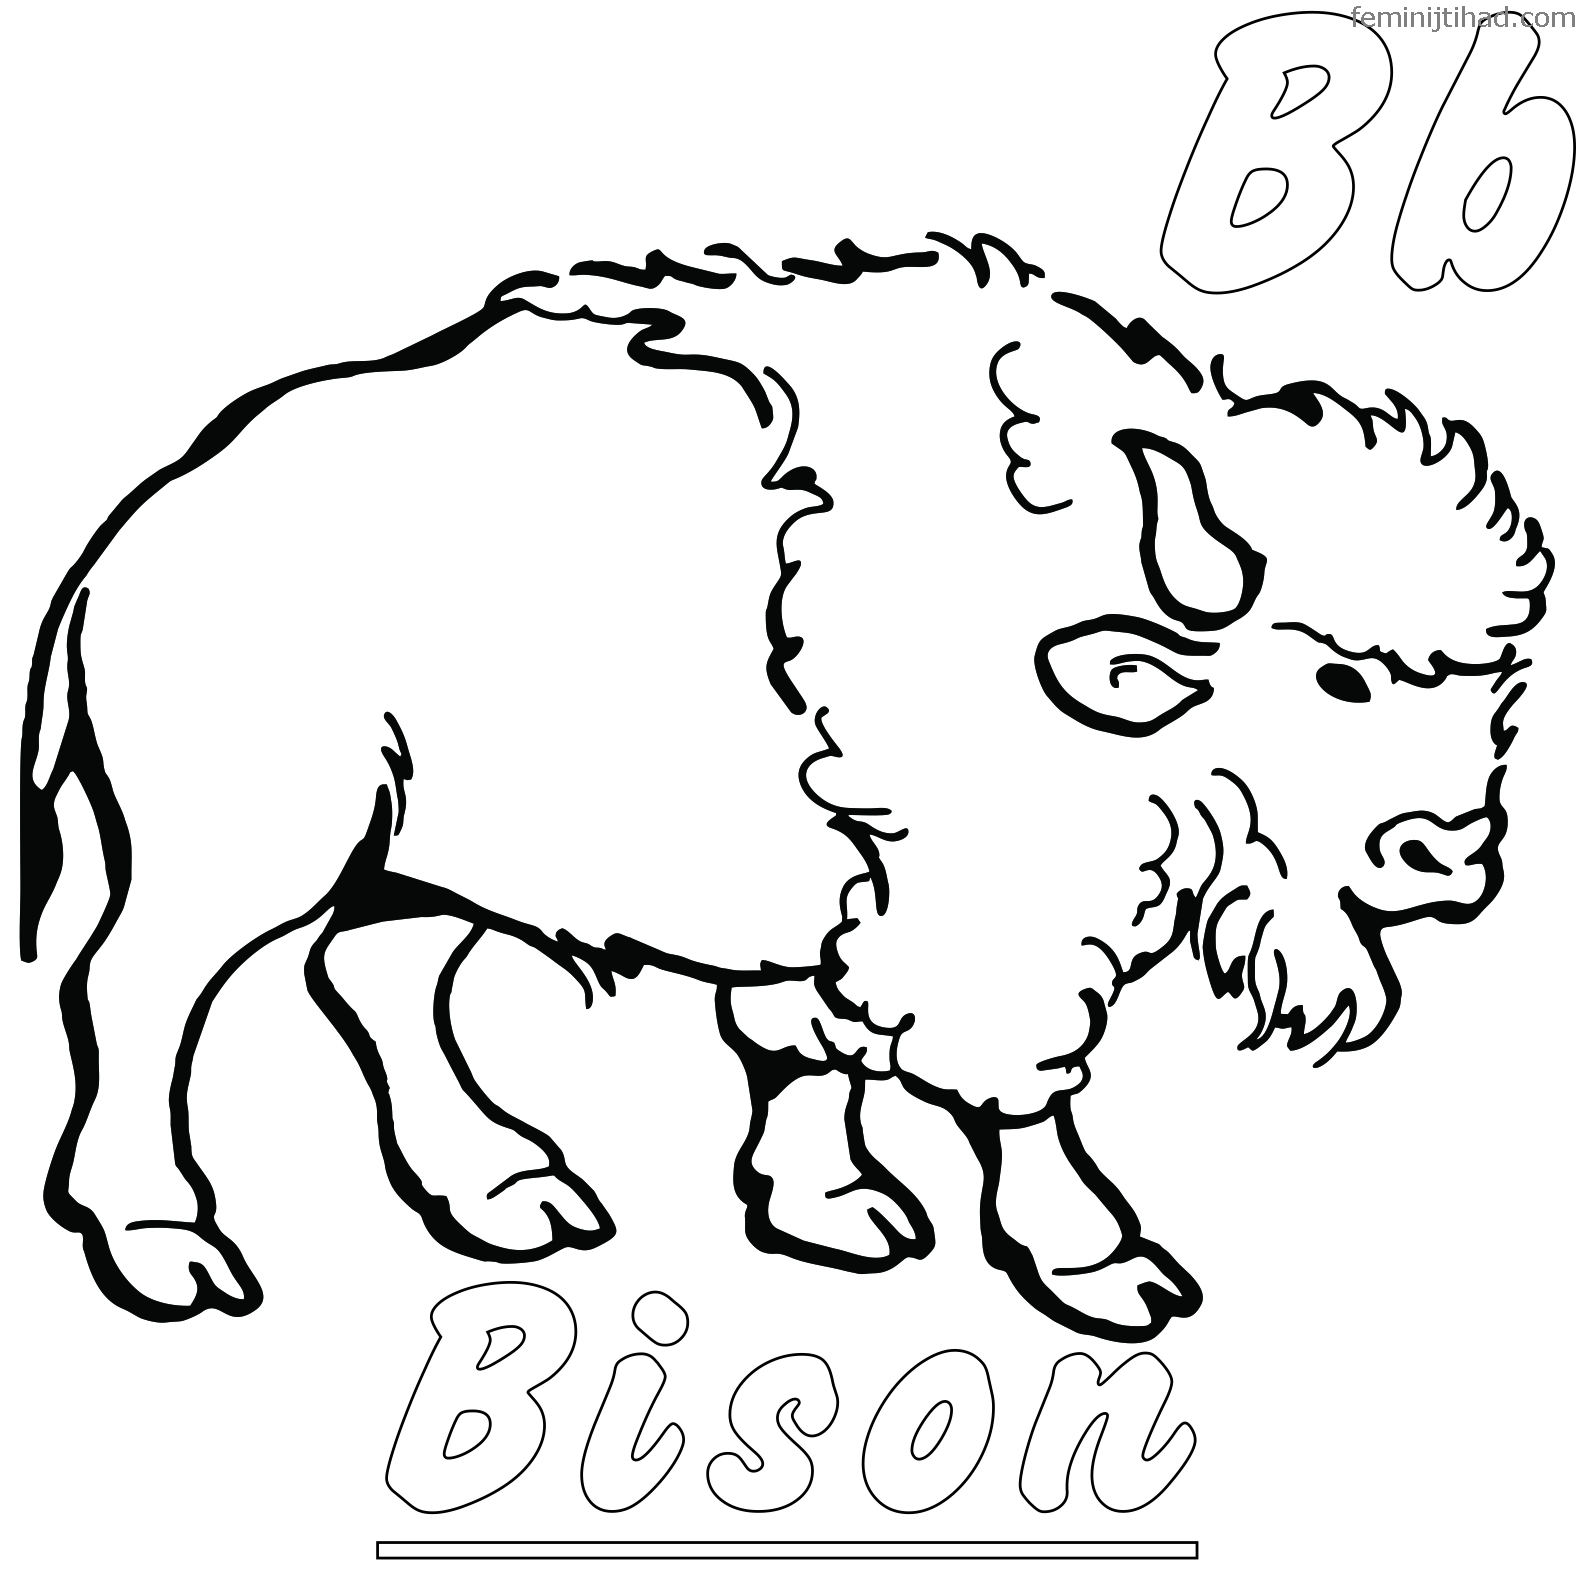 Bison Coloring Pages Printable For Free Free Coloring Sheets Animal Coloring Pages Coloring Pages Buffalo Pictures